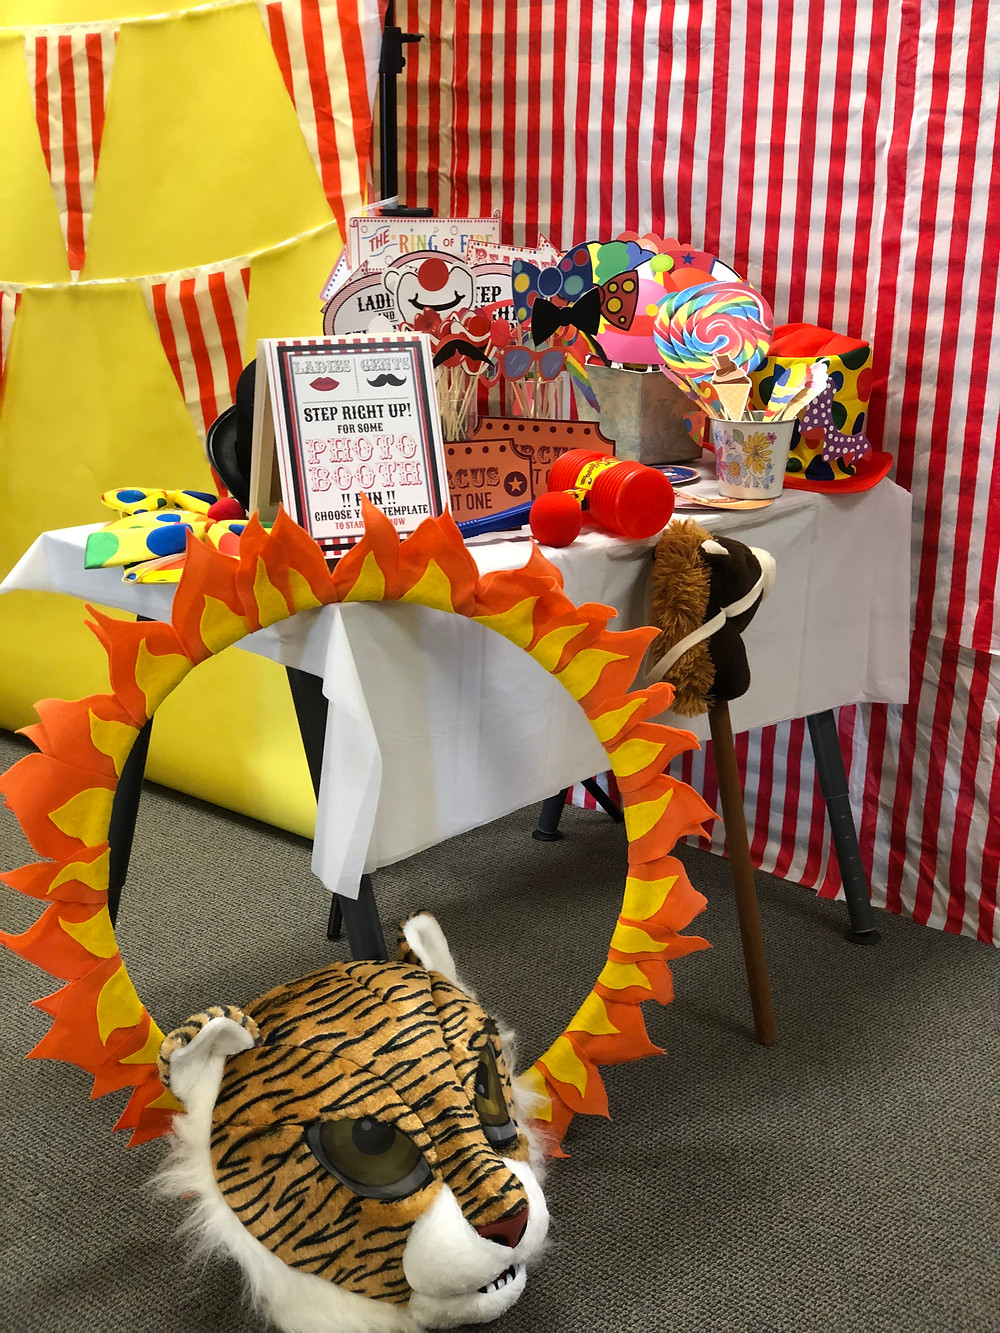 Ring of Fire, Tiger Head Prop, prop table, circus theme event, kids circus, prop overflow,